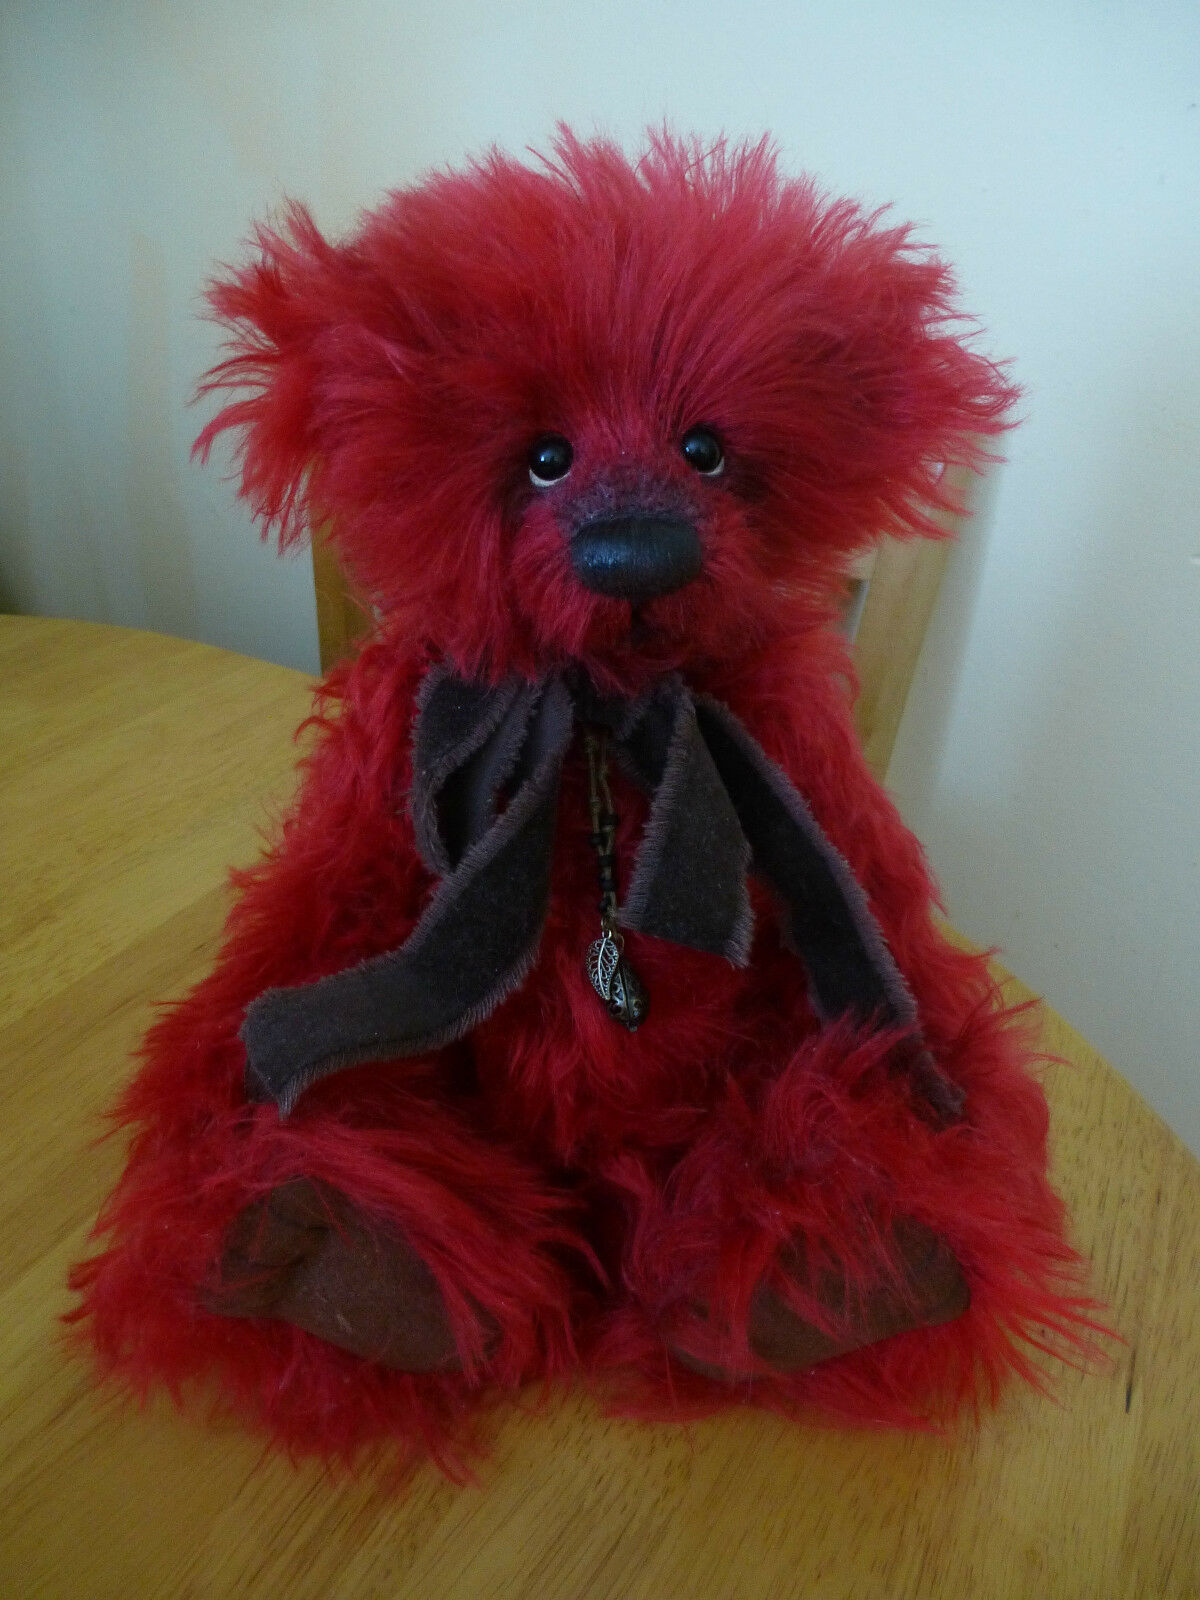 Charlie Bears Enzo Isabelle Lee Ltd Edition Mohair Collection 2012 2012 2012 RETIrot 5261fa